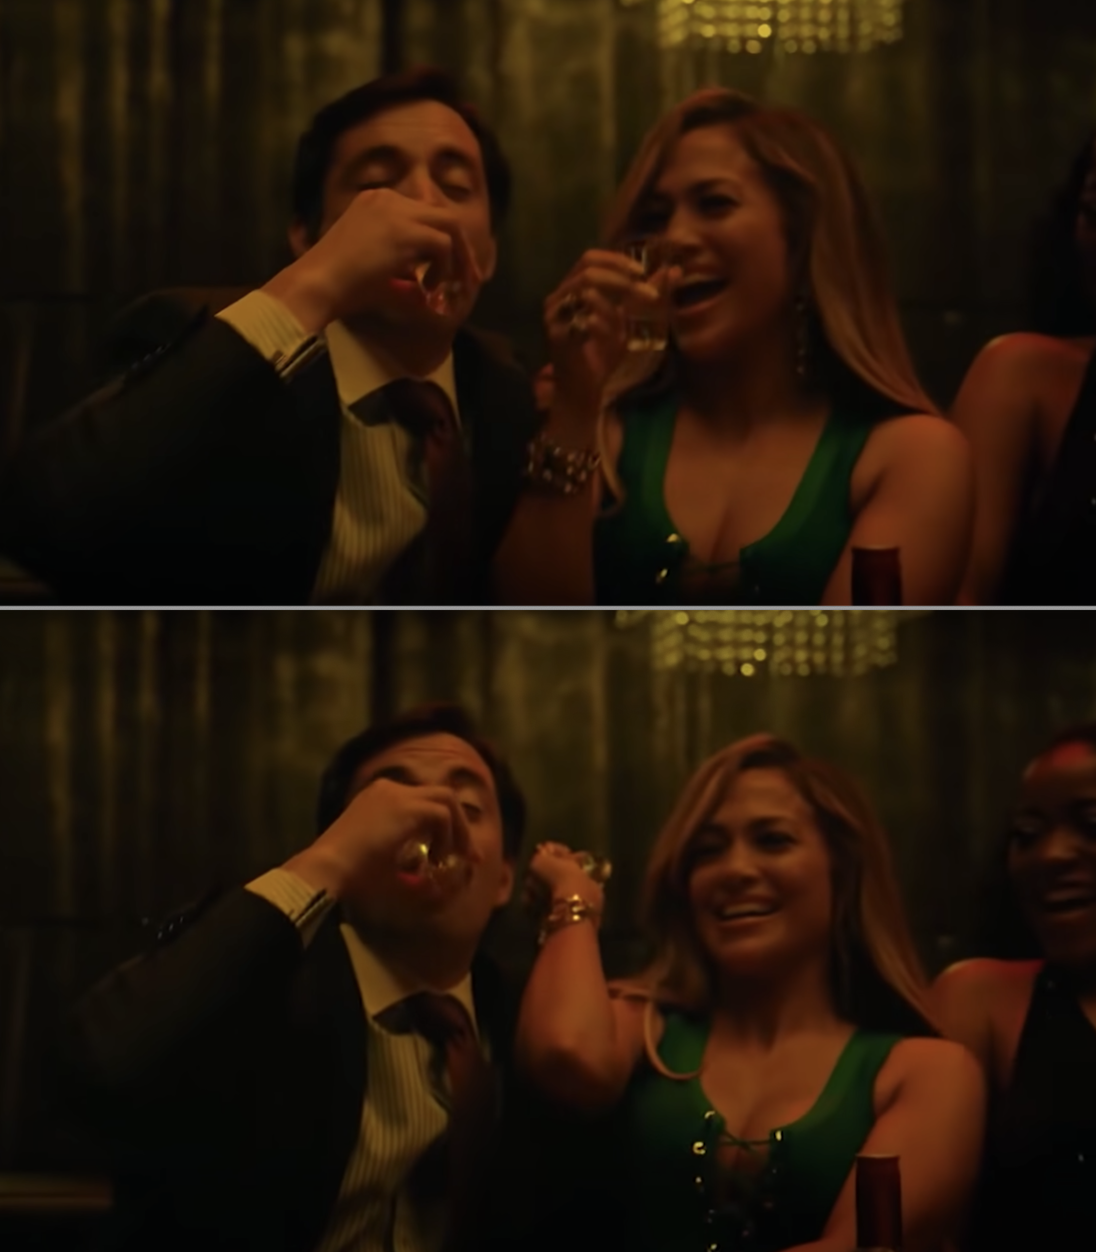 """Jennifer Lopez's """"Hustlers"""" character sneakily throwing away her shot"""